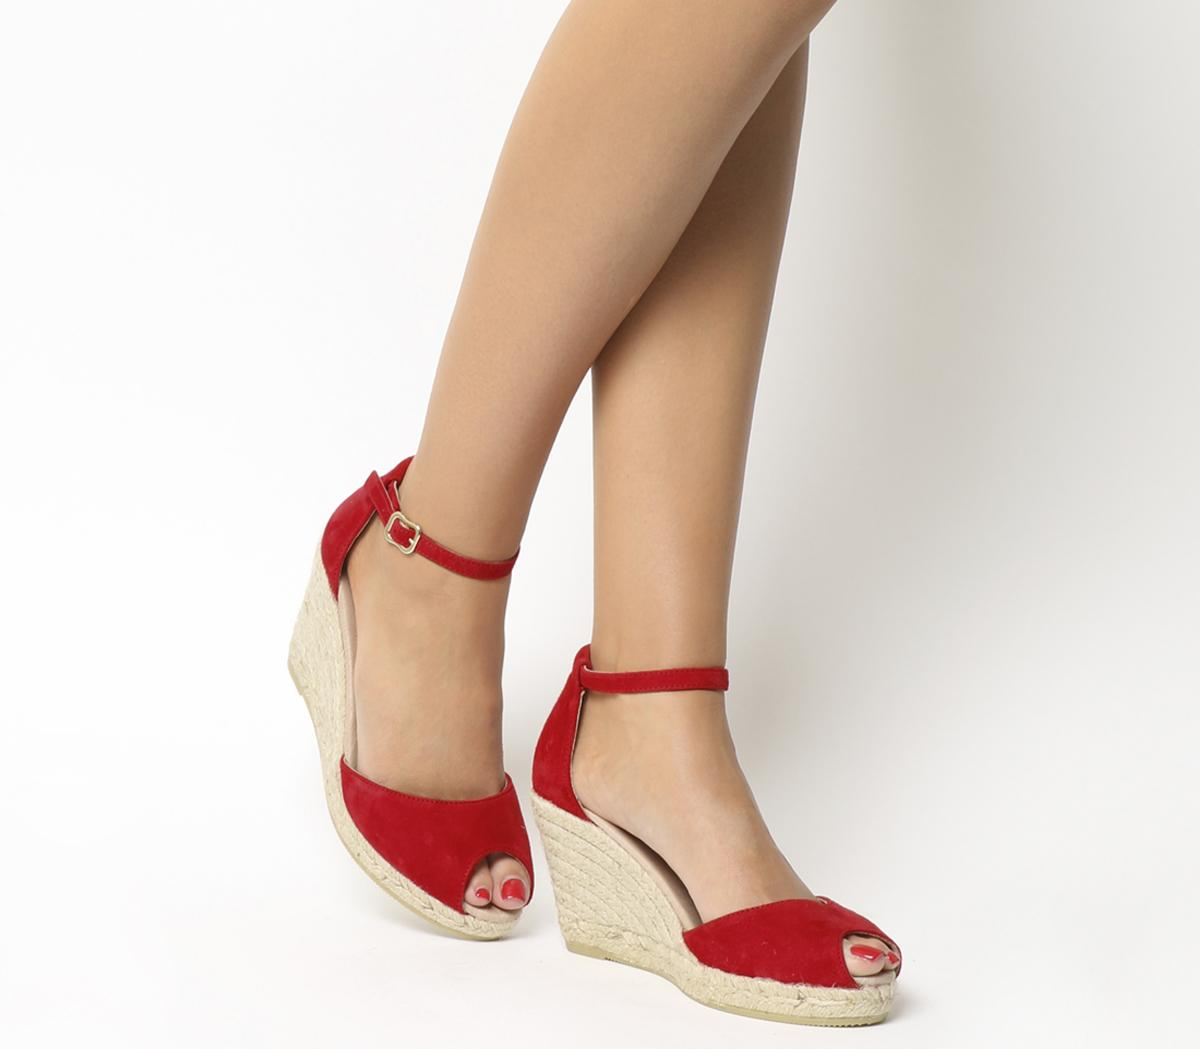 Gaimo for OFFICE Susan Wedge Espadrille